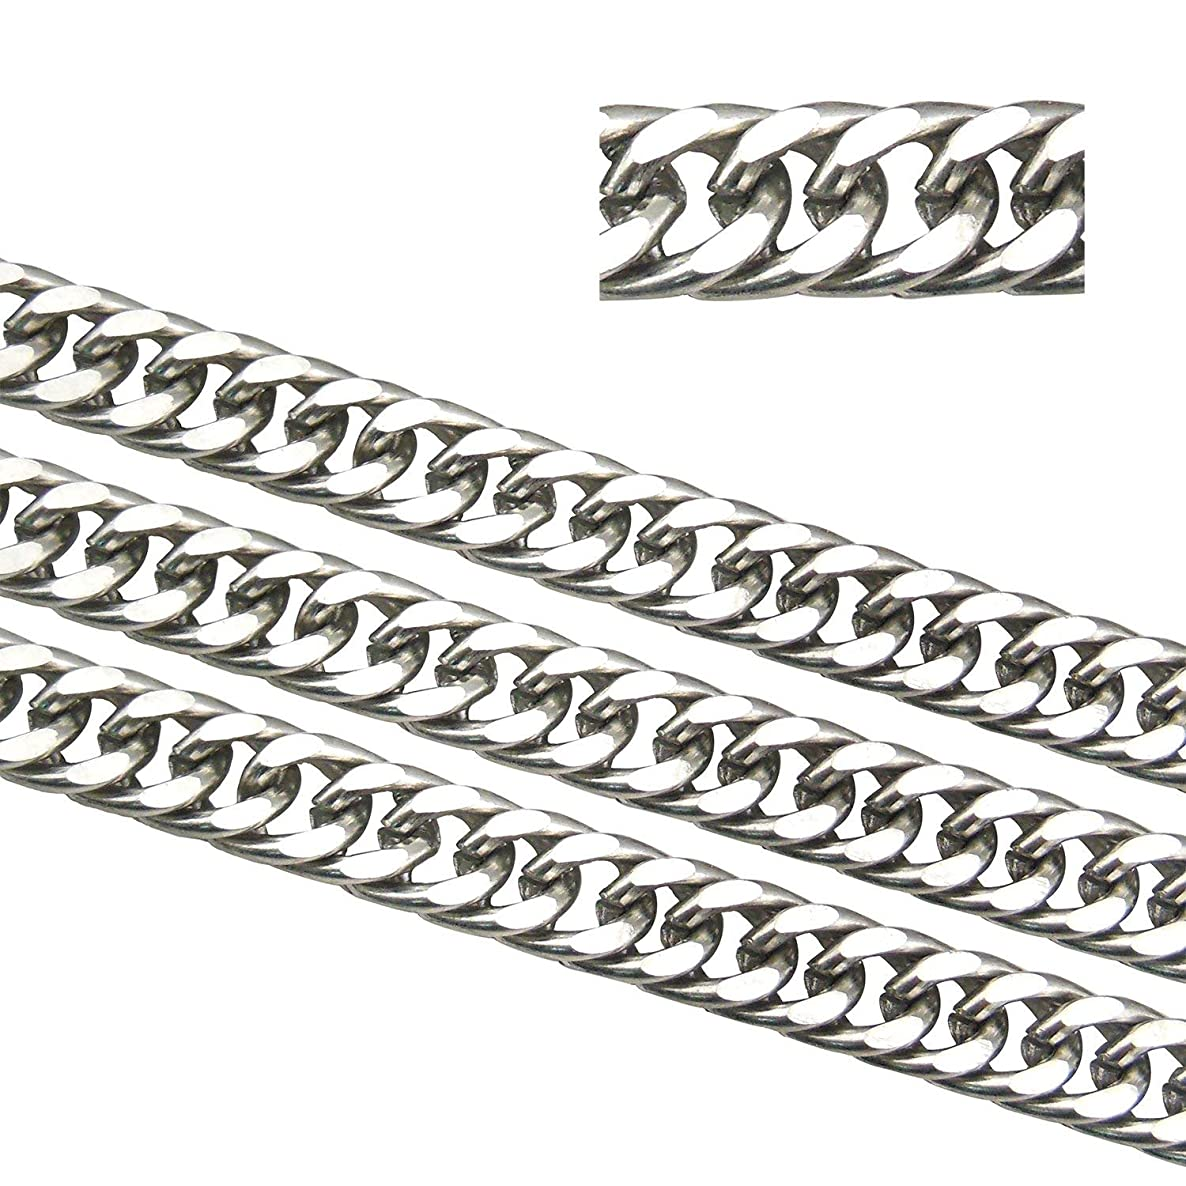 16.5ft 5mm Width Stainless Steel Link Chain Double Weave Chains Findings Fit for Jewelry Making &DIY (SC-1006-A)